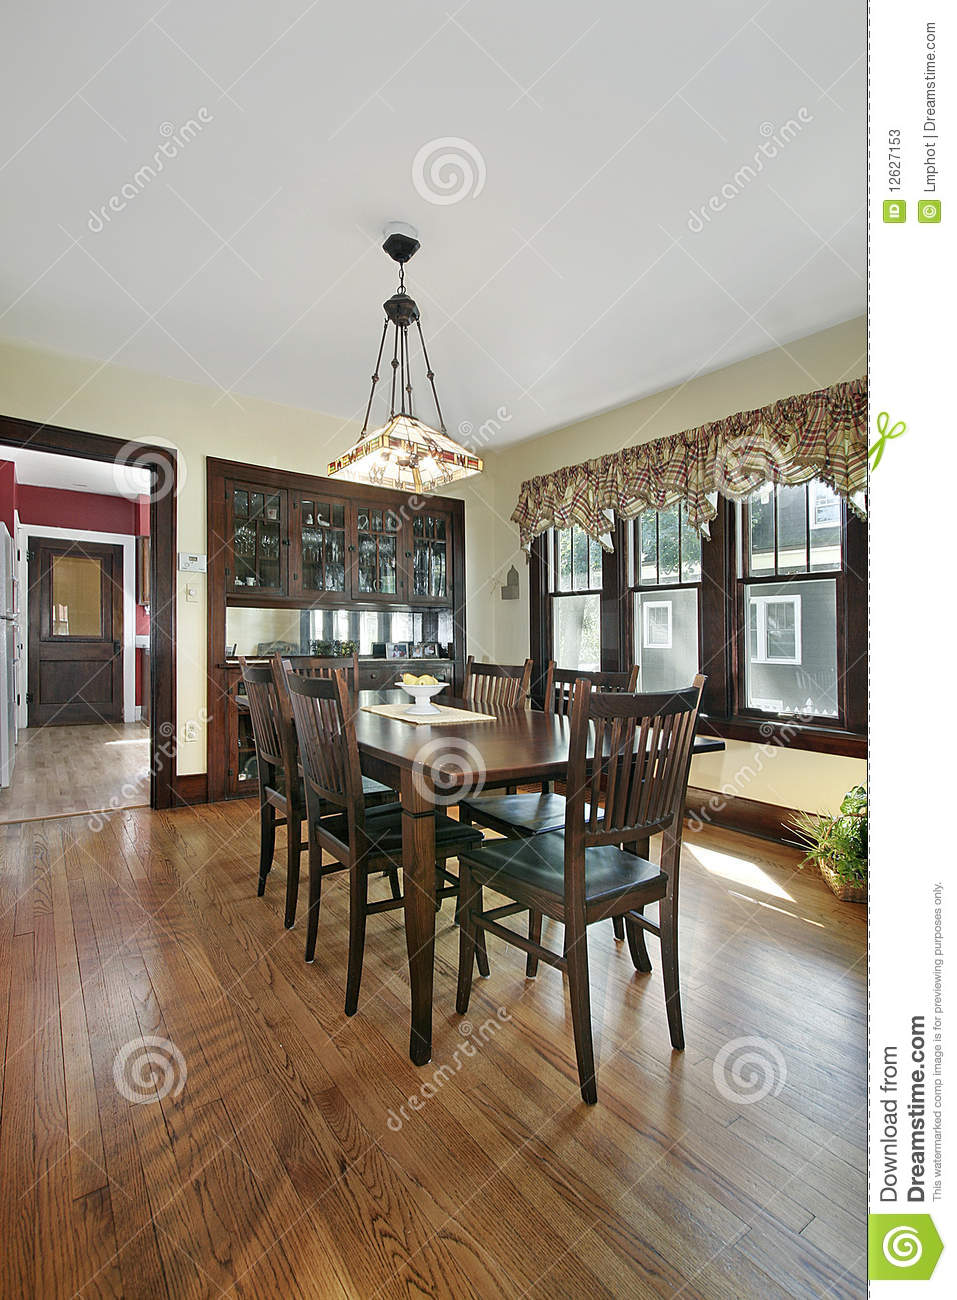 wood paneled dining room stock photos image 12627153